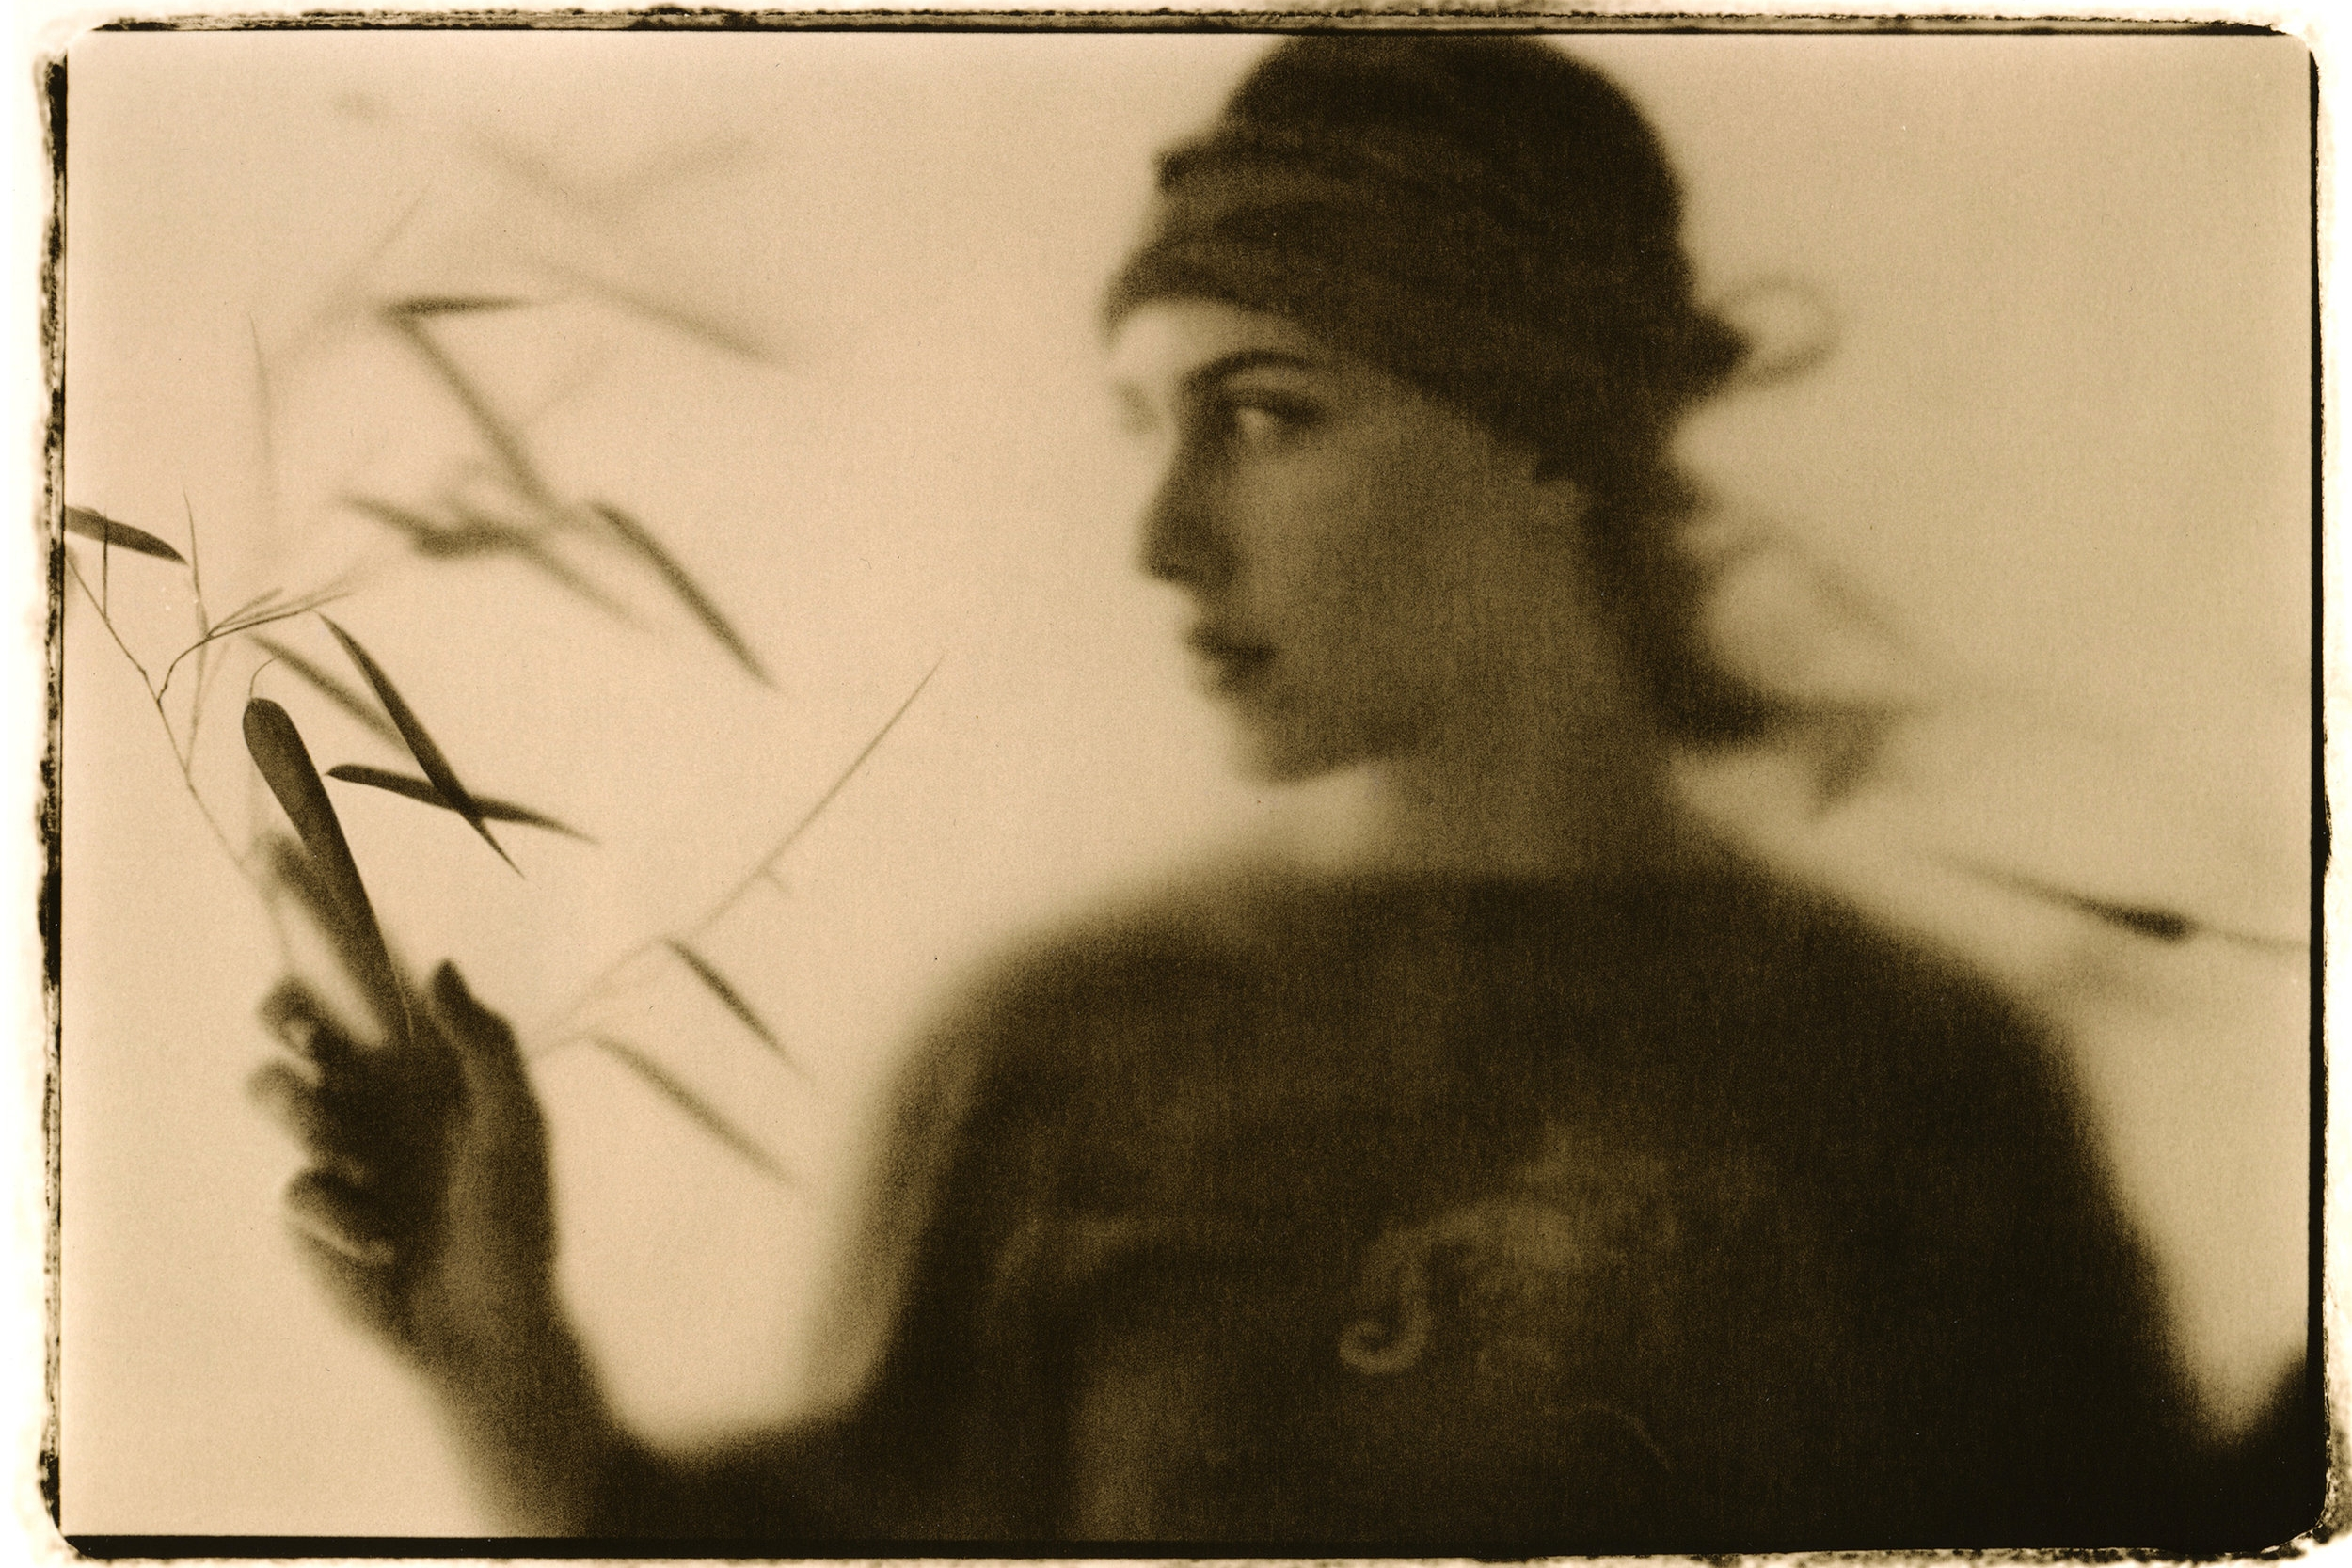 Susan_de_Witt_Magic_Wand.jpg